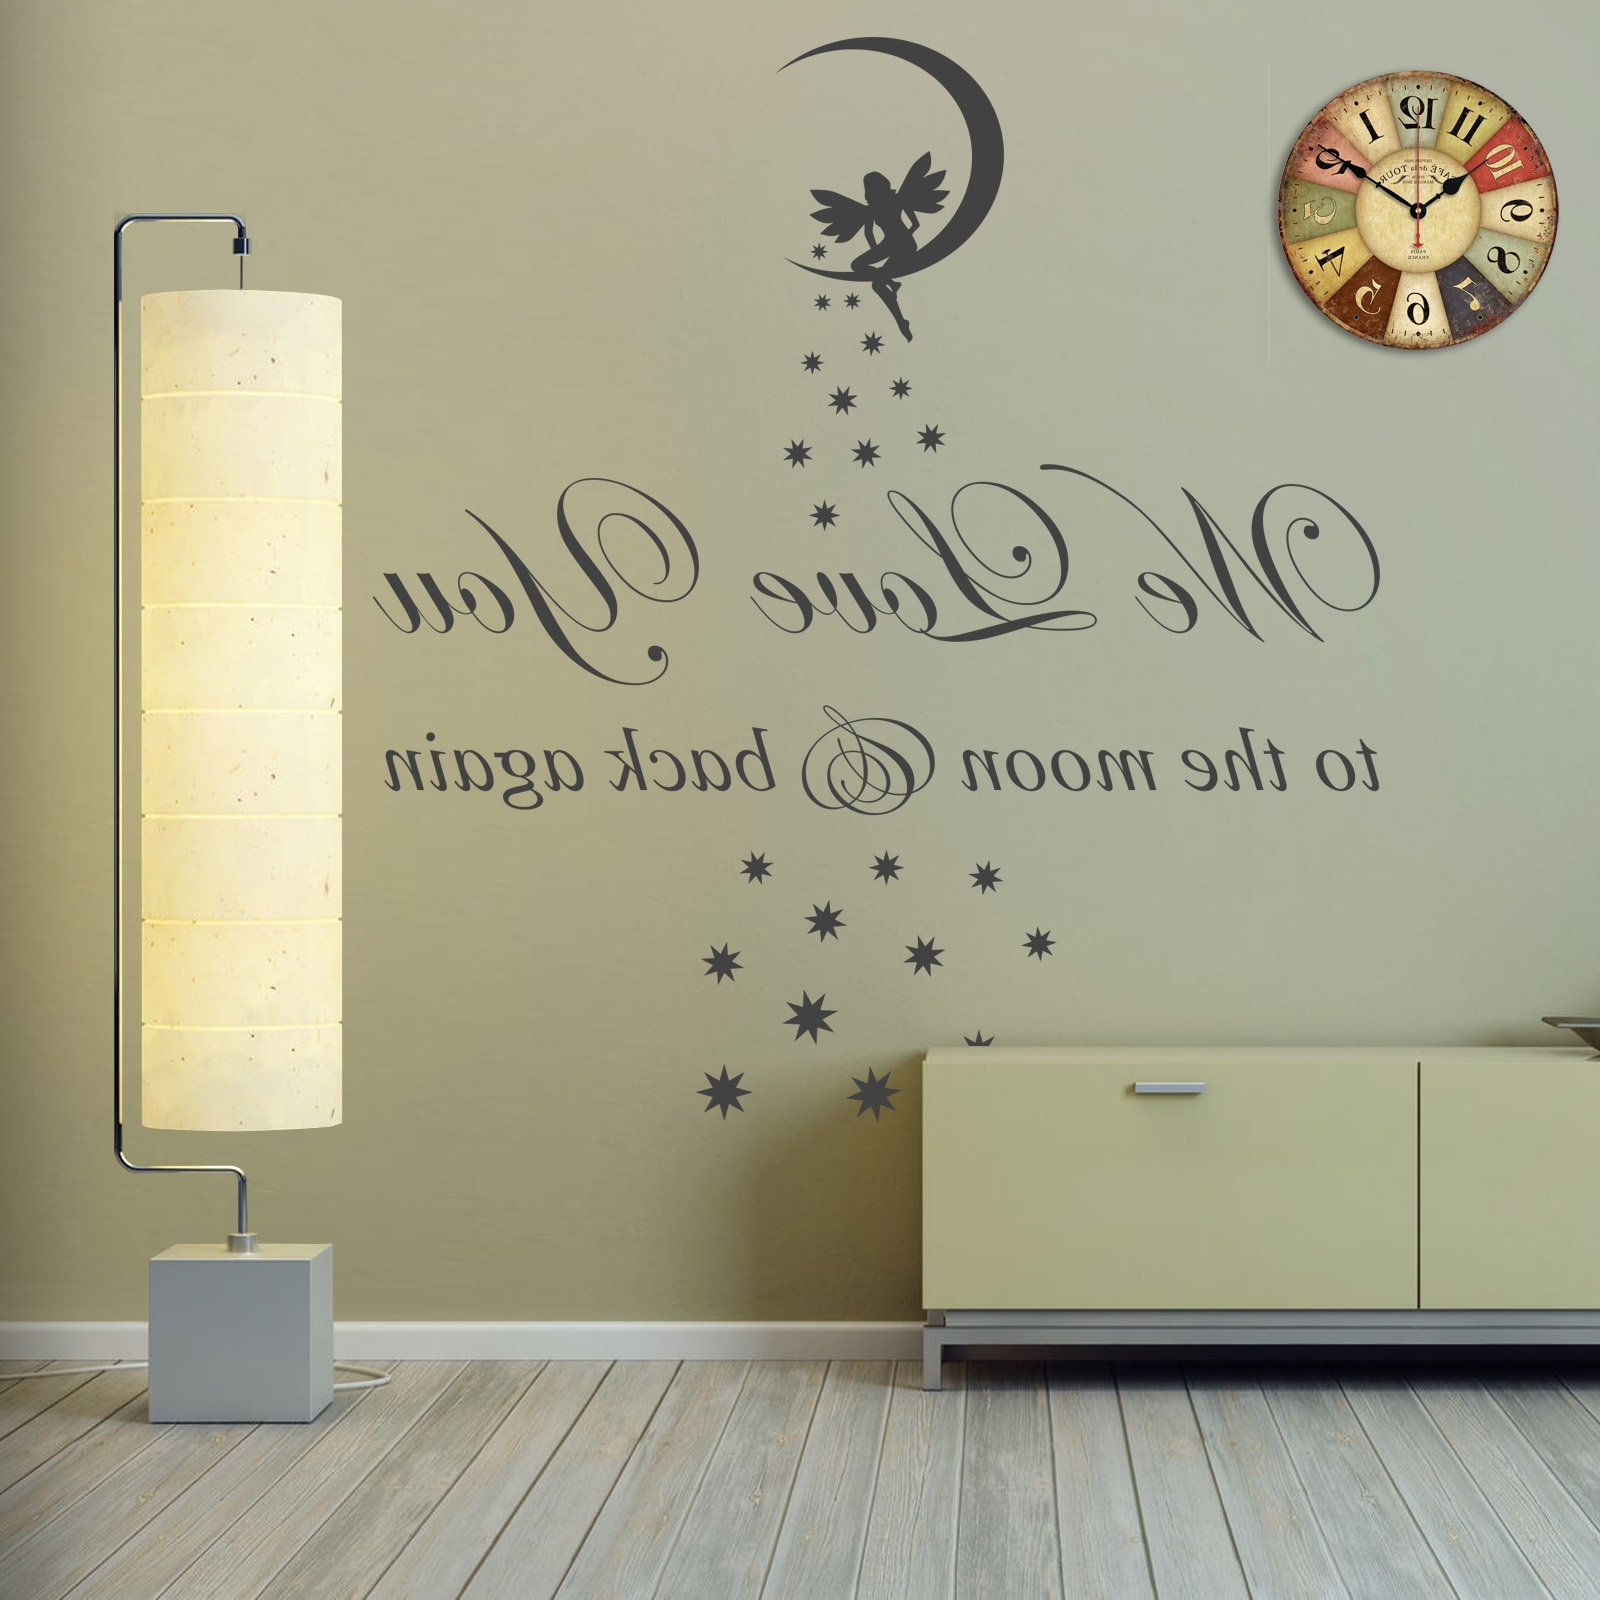 We Love You To The Moon & Back Vinyl Wall Art Sticker Childs Room For Fashionable I Love You To The Moon And Back Wall Art (View 19 of 20)